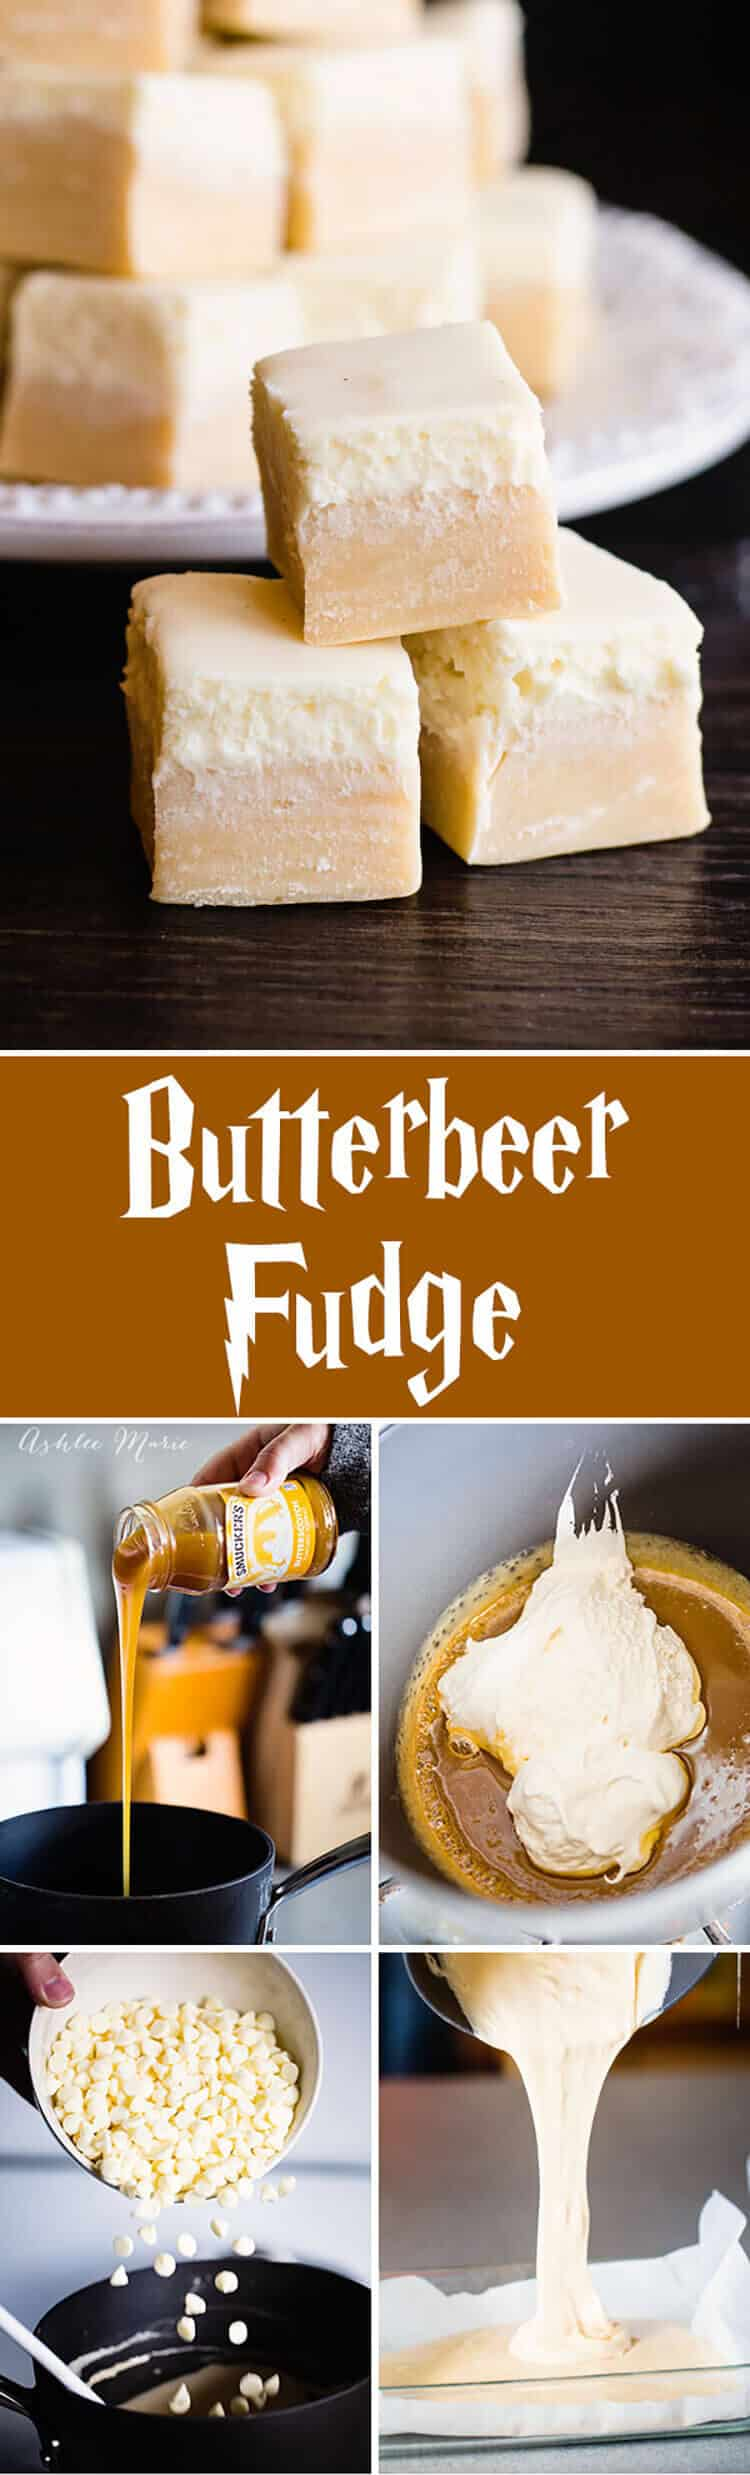 Everyone loves butterbeer, so here is an oh so delicious butterbeer fudge with a creamy top, just like the drink itself